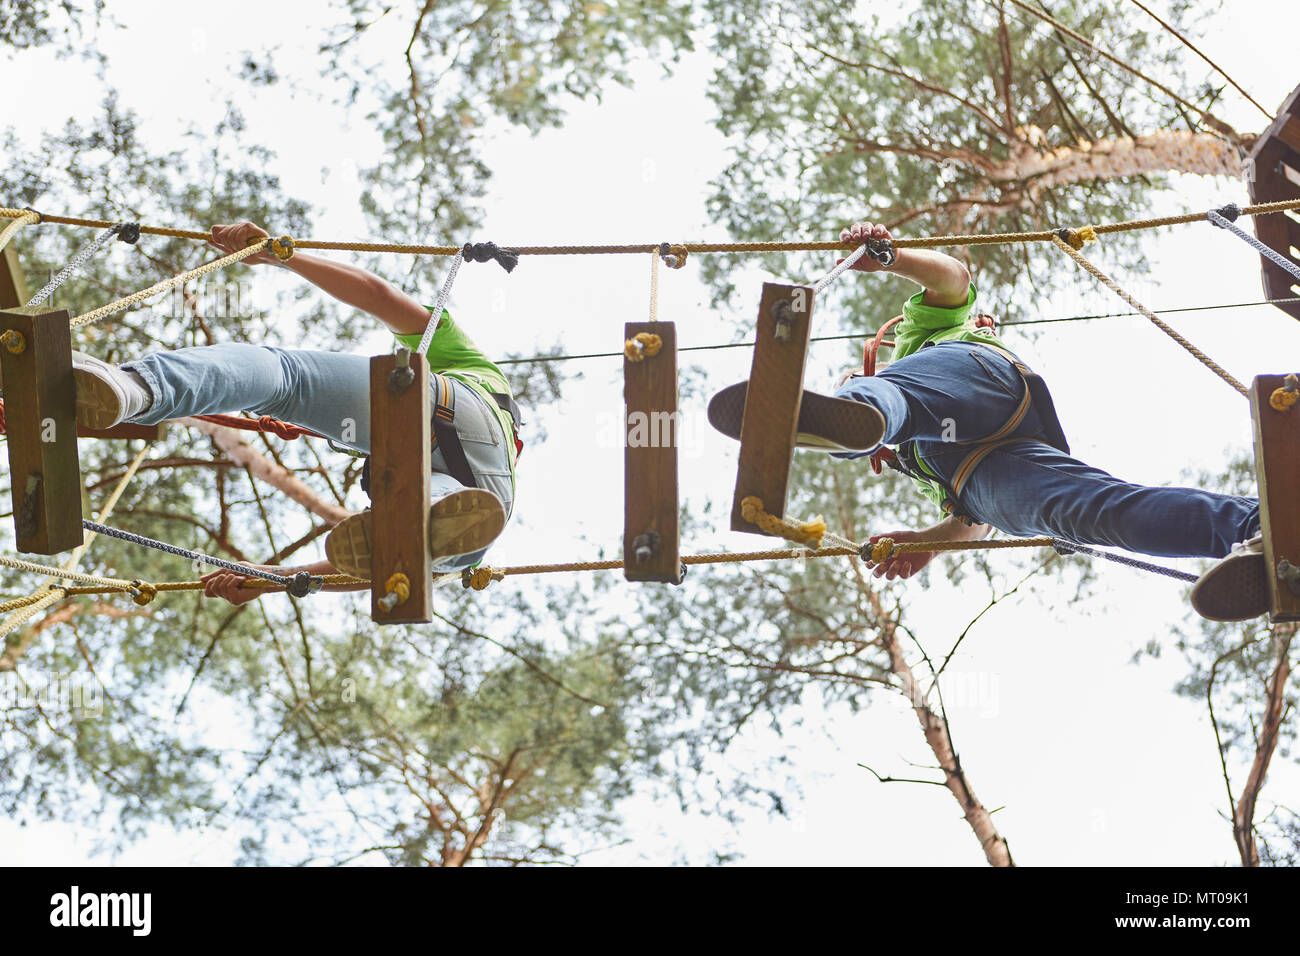 Team balances on a bridge with high difficulty in the high ropes course - Stock Image